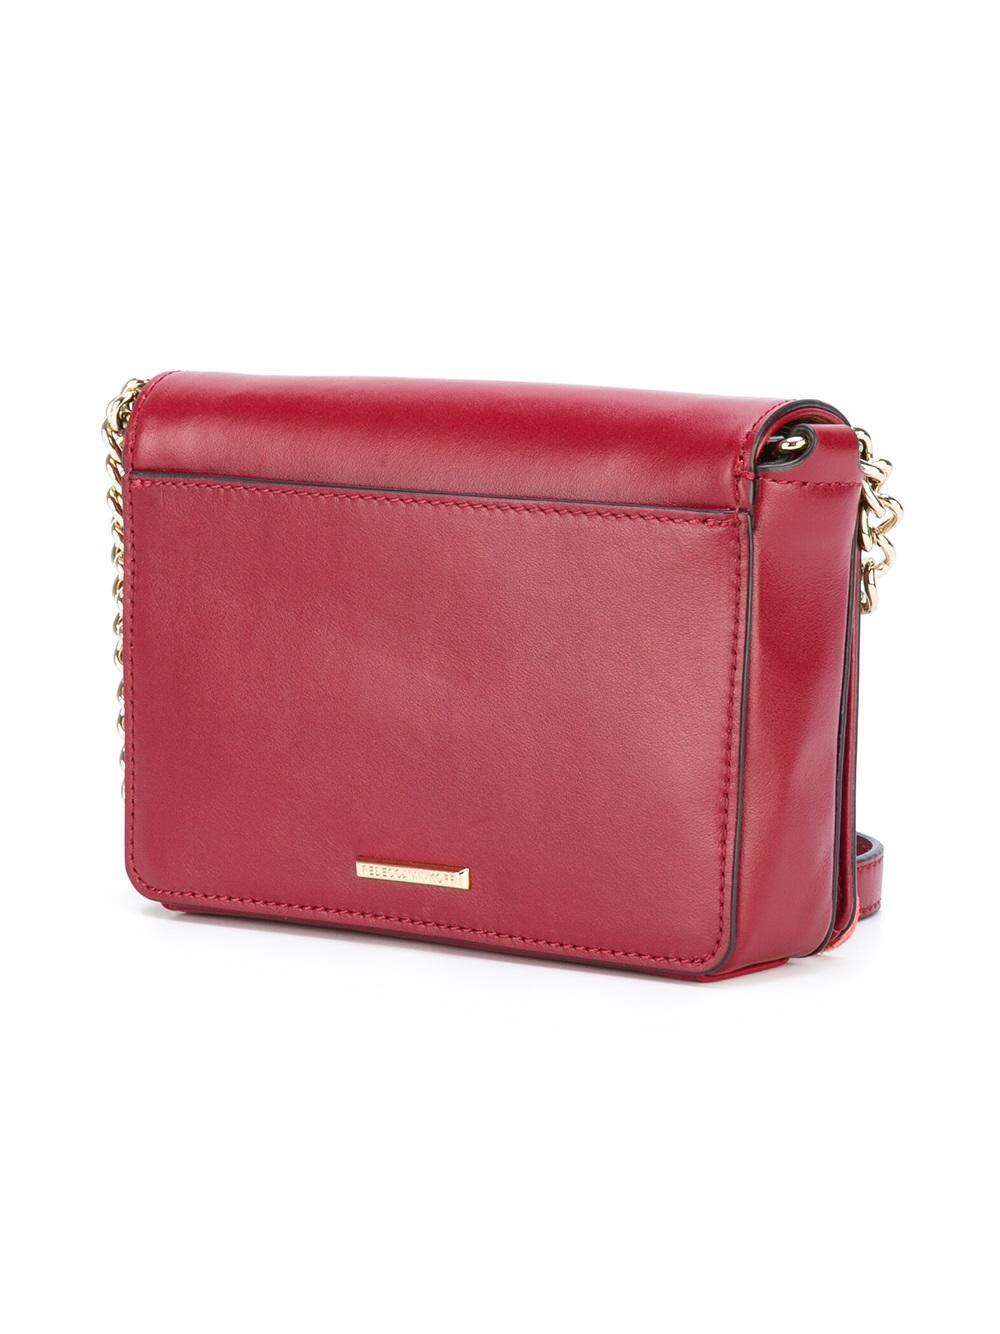 Designed with a charming urban approach, this Love crossbody bag from Rebecca Minkoff is a contemporary classic. Made from quilted burgundy leather, this holdall is equipped with plenty of cardholders to organise your most important essentials.